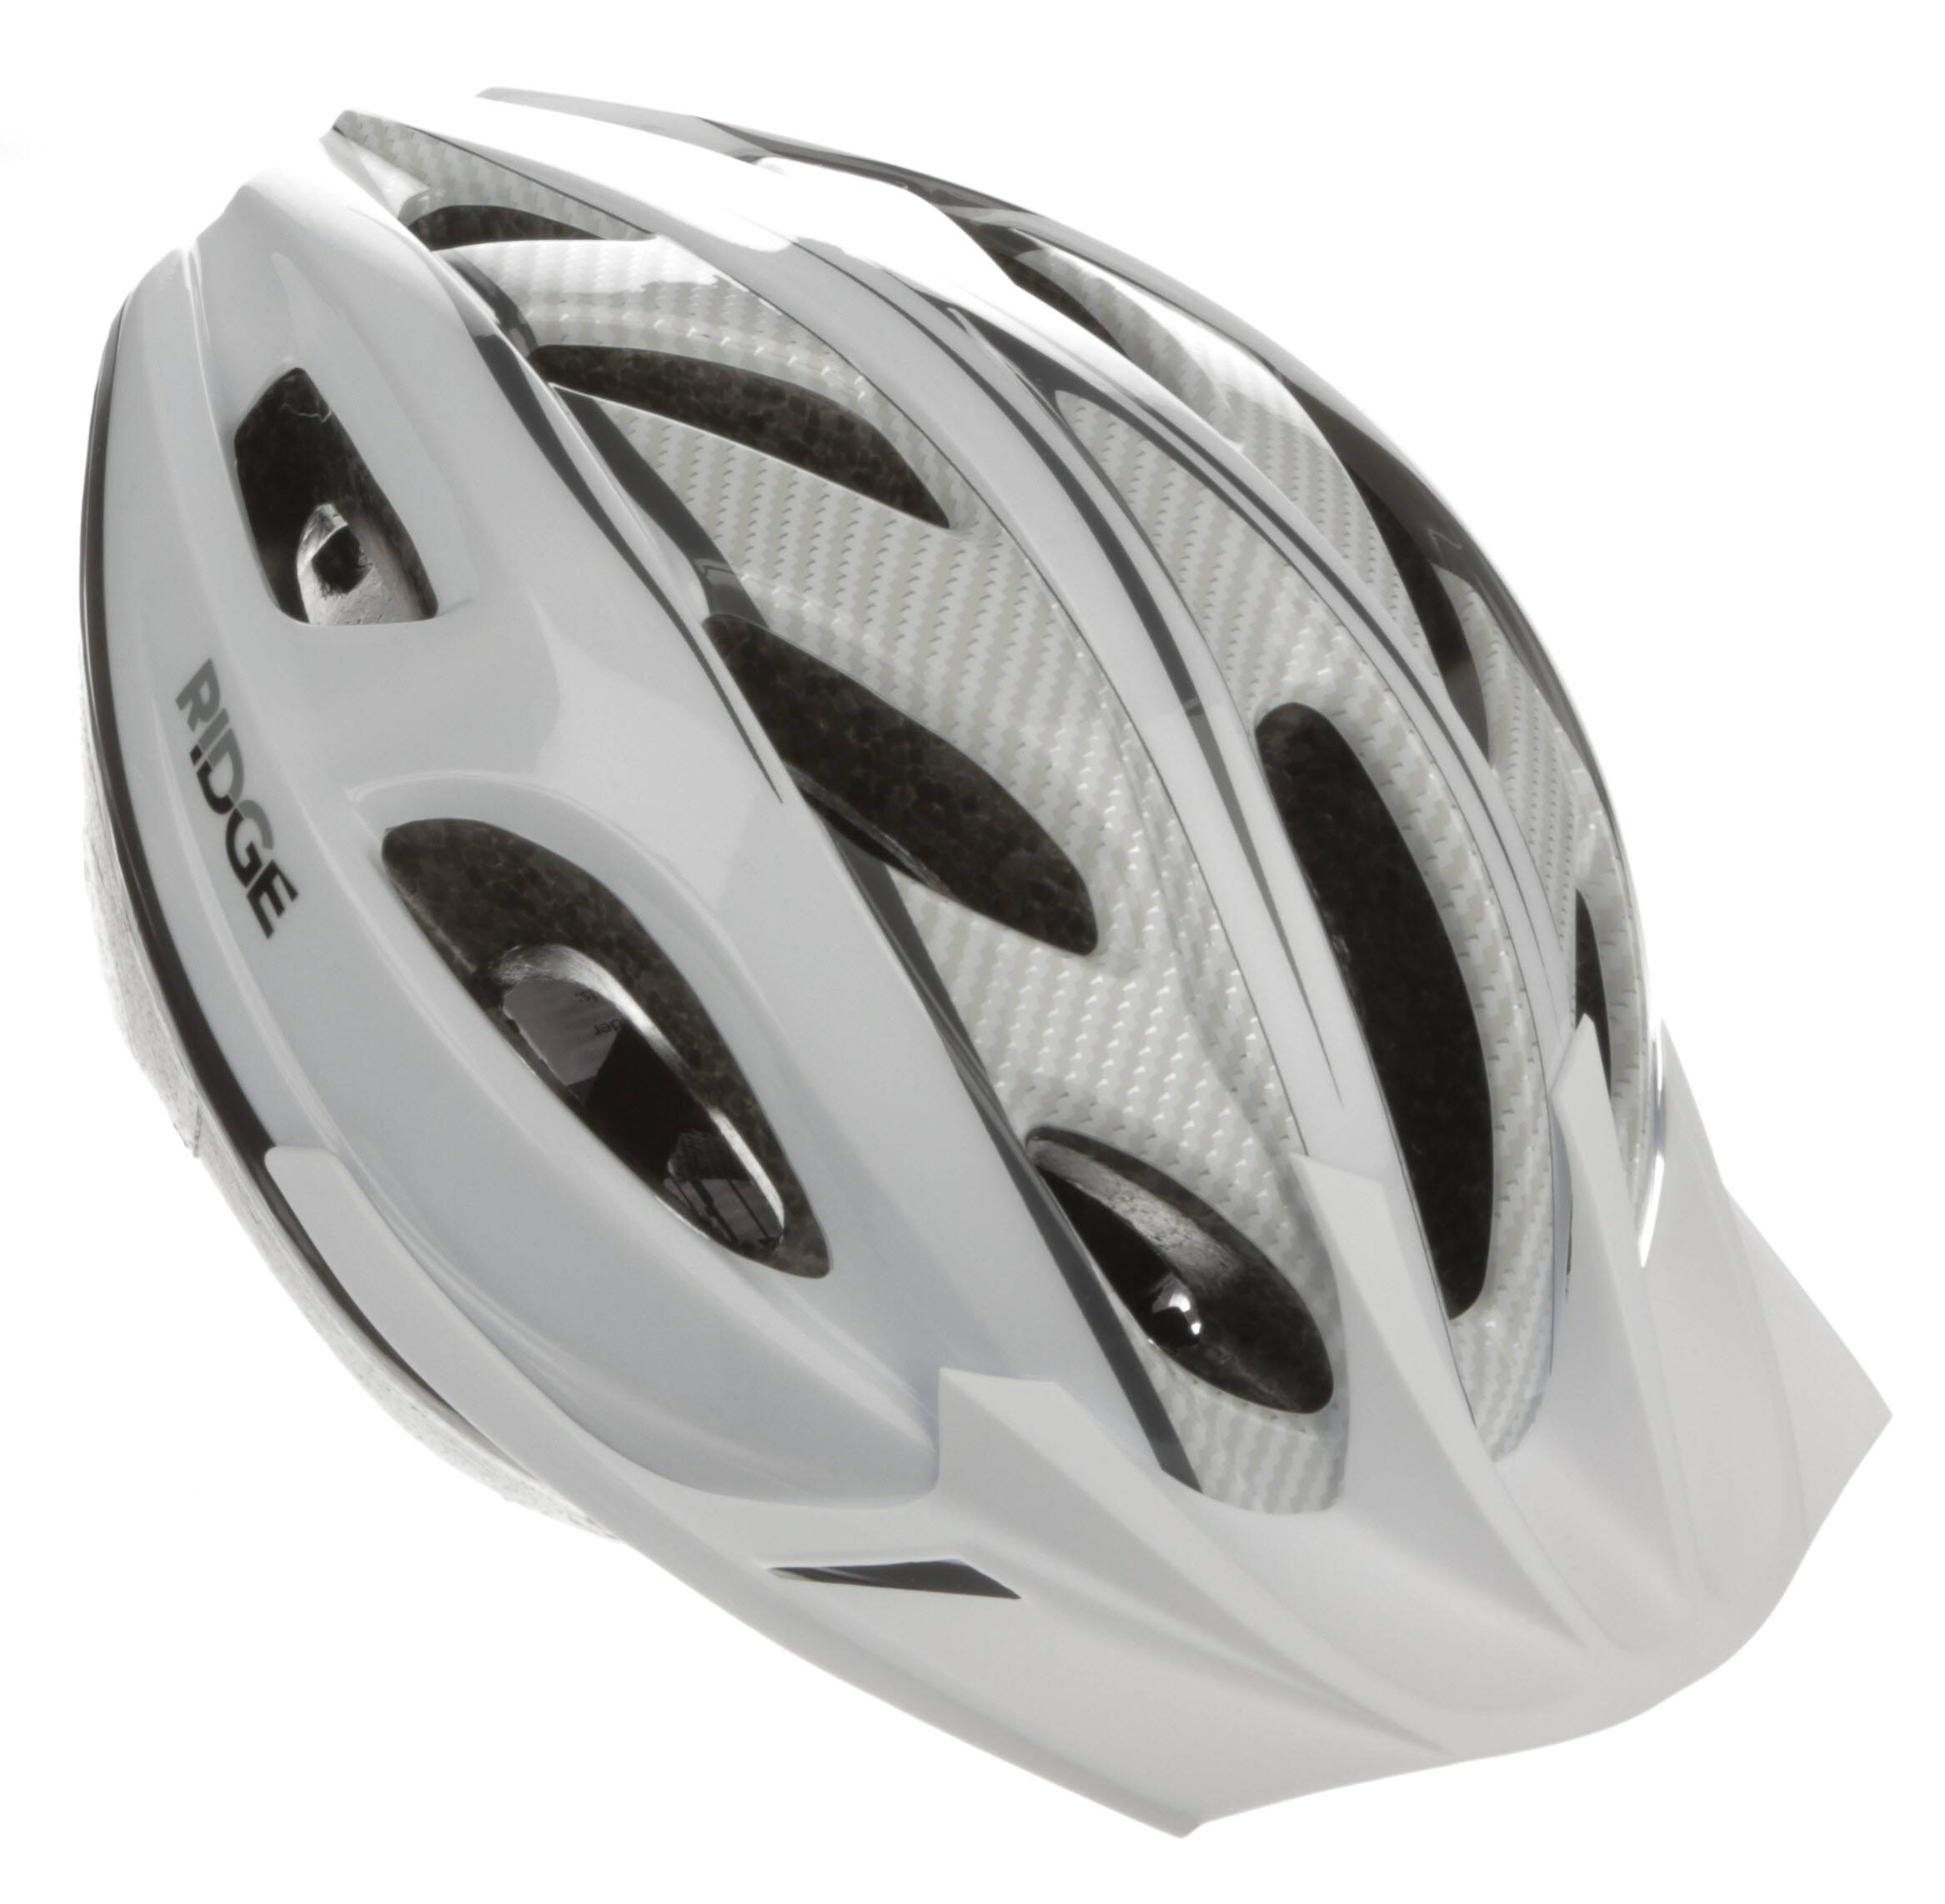 Ridge All Terrain Bike Helmet